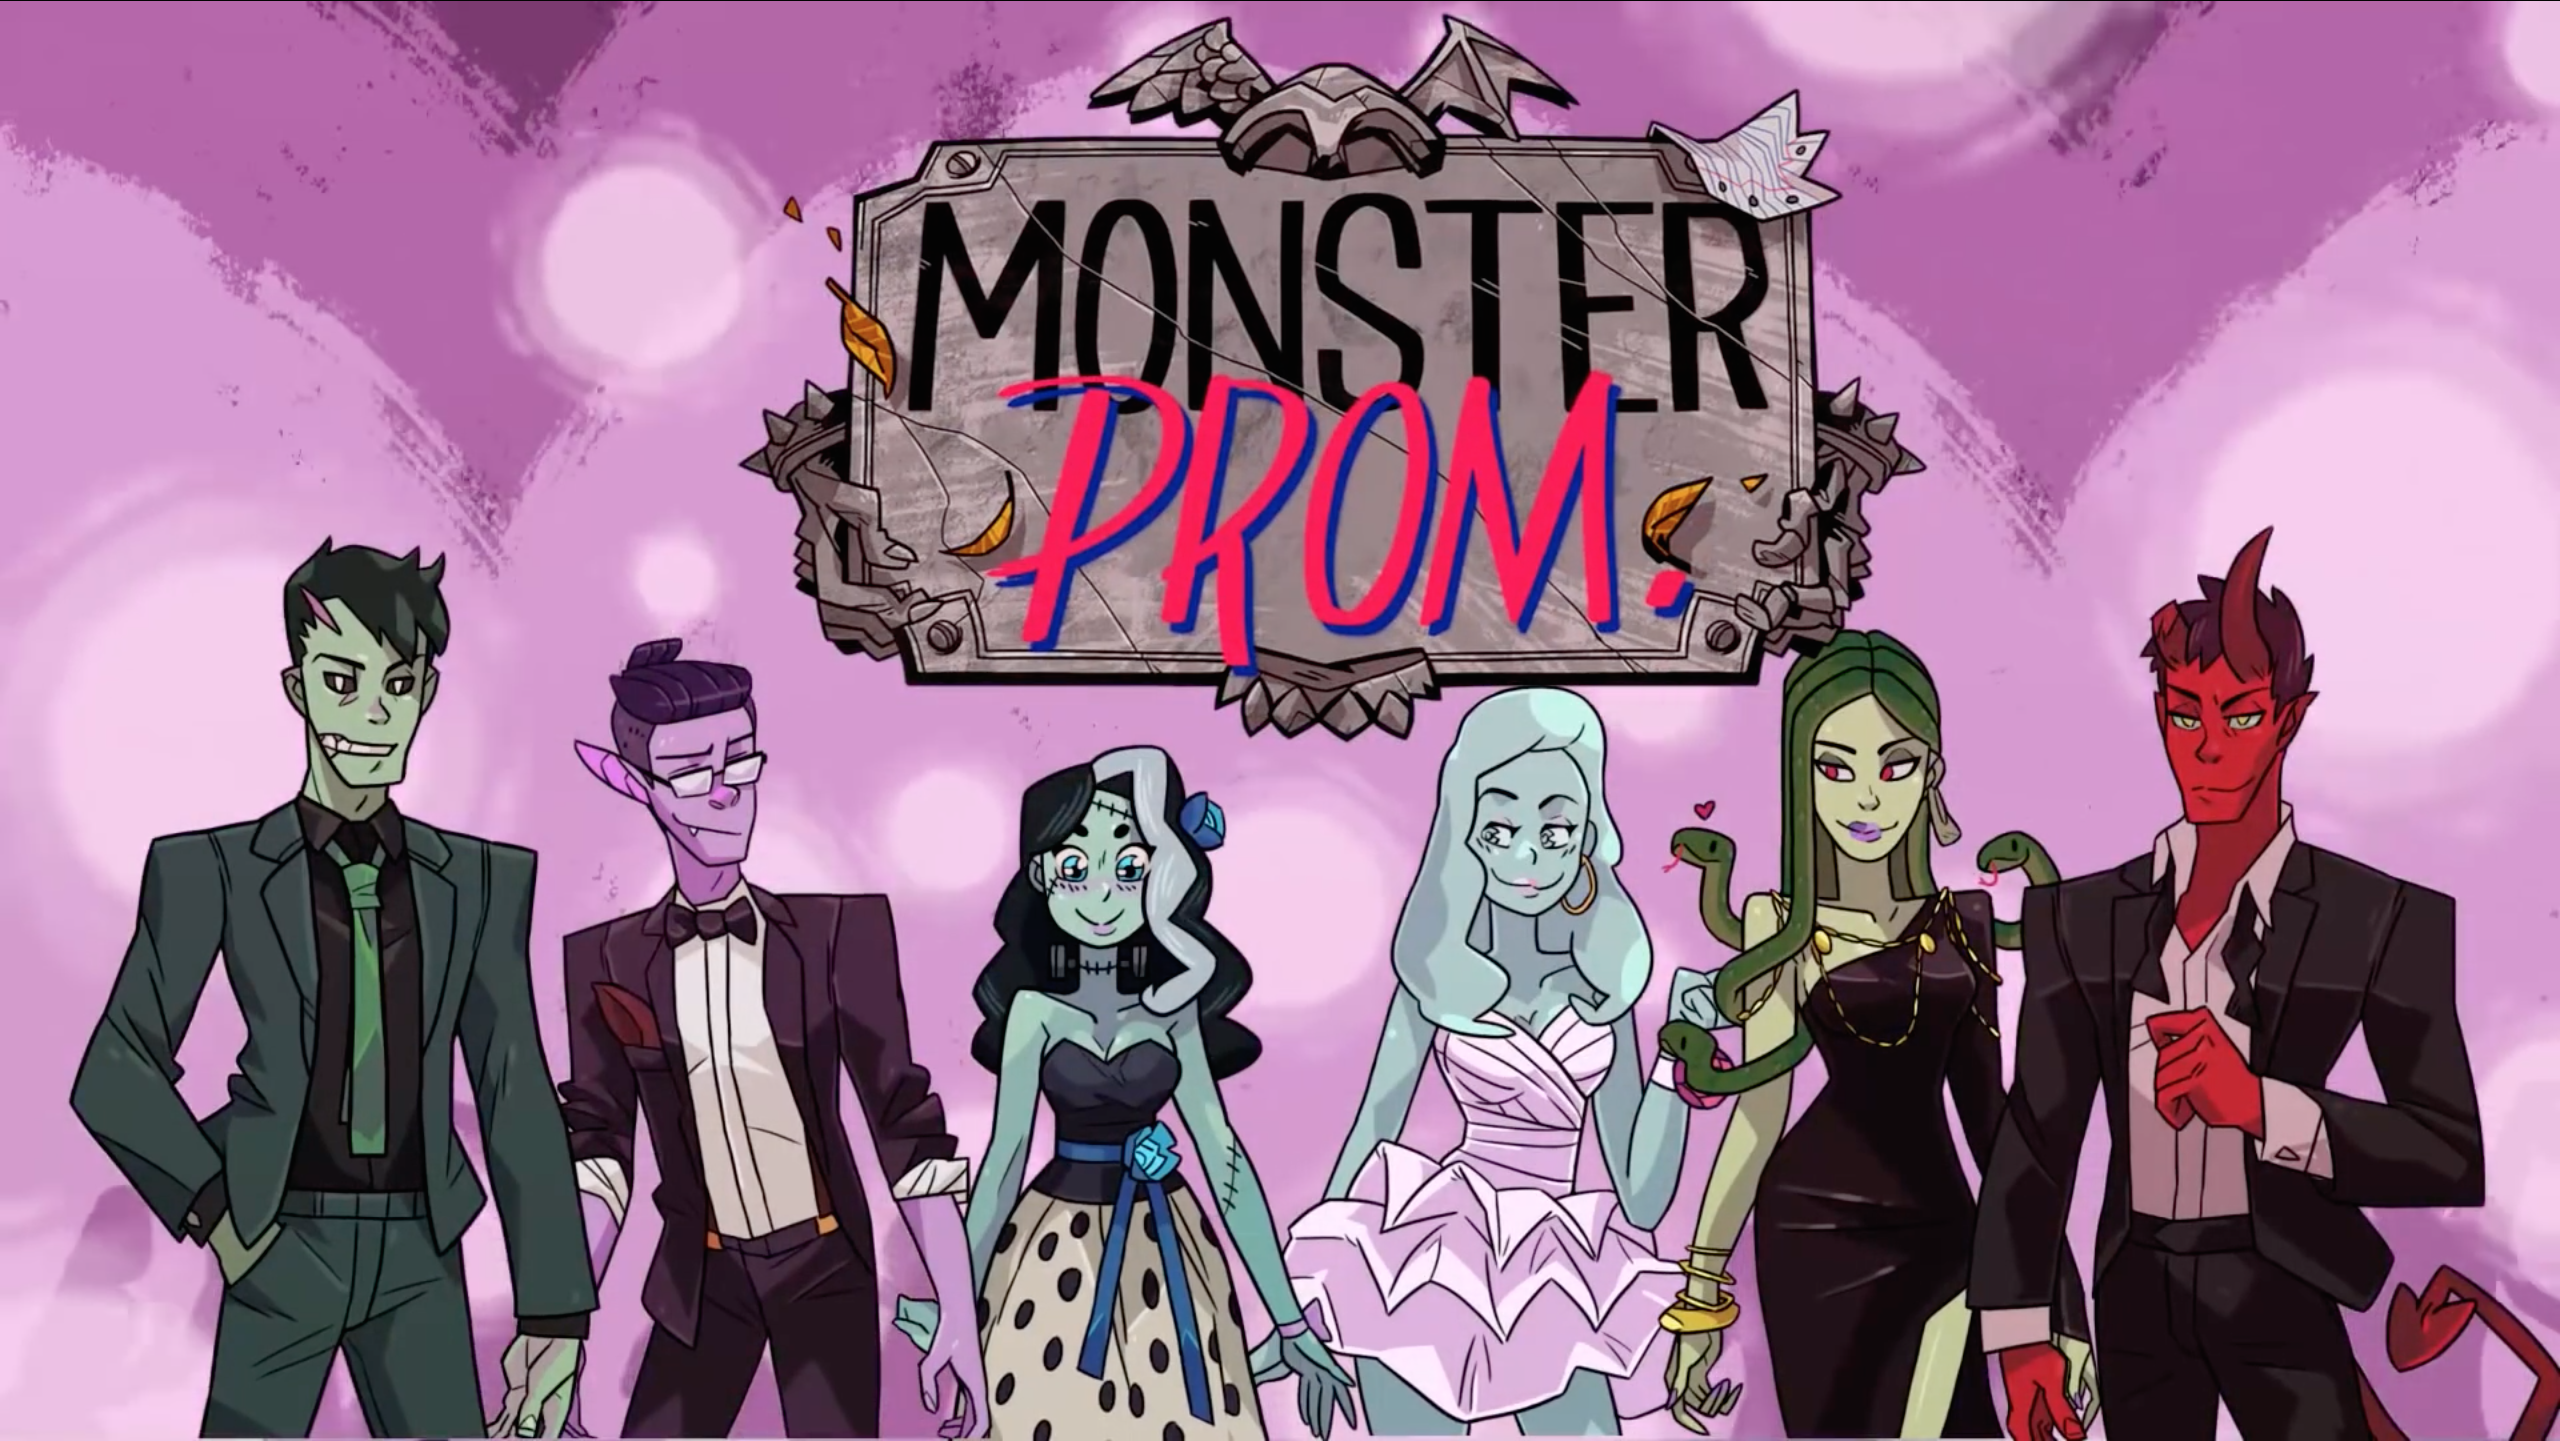 Monster high dating simulator 2018 date